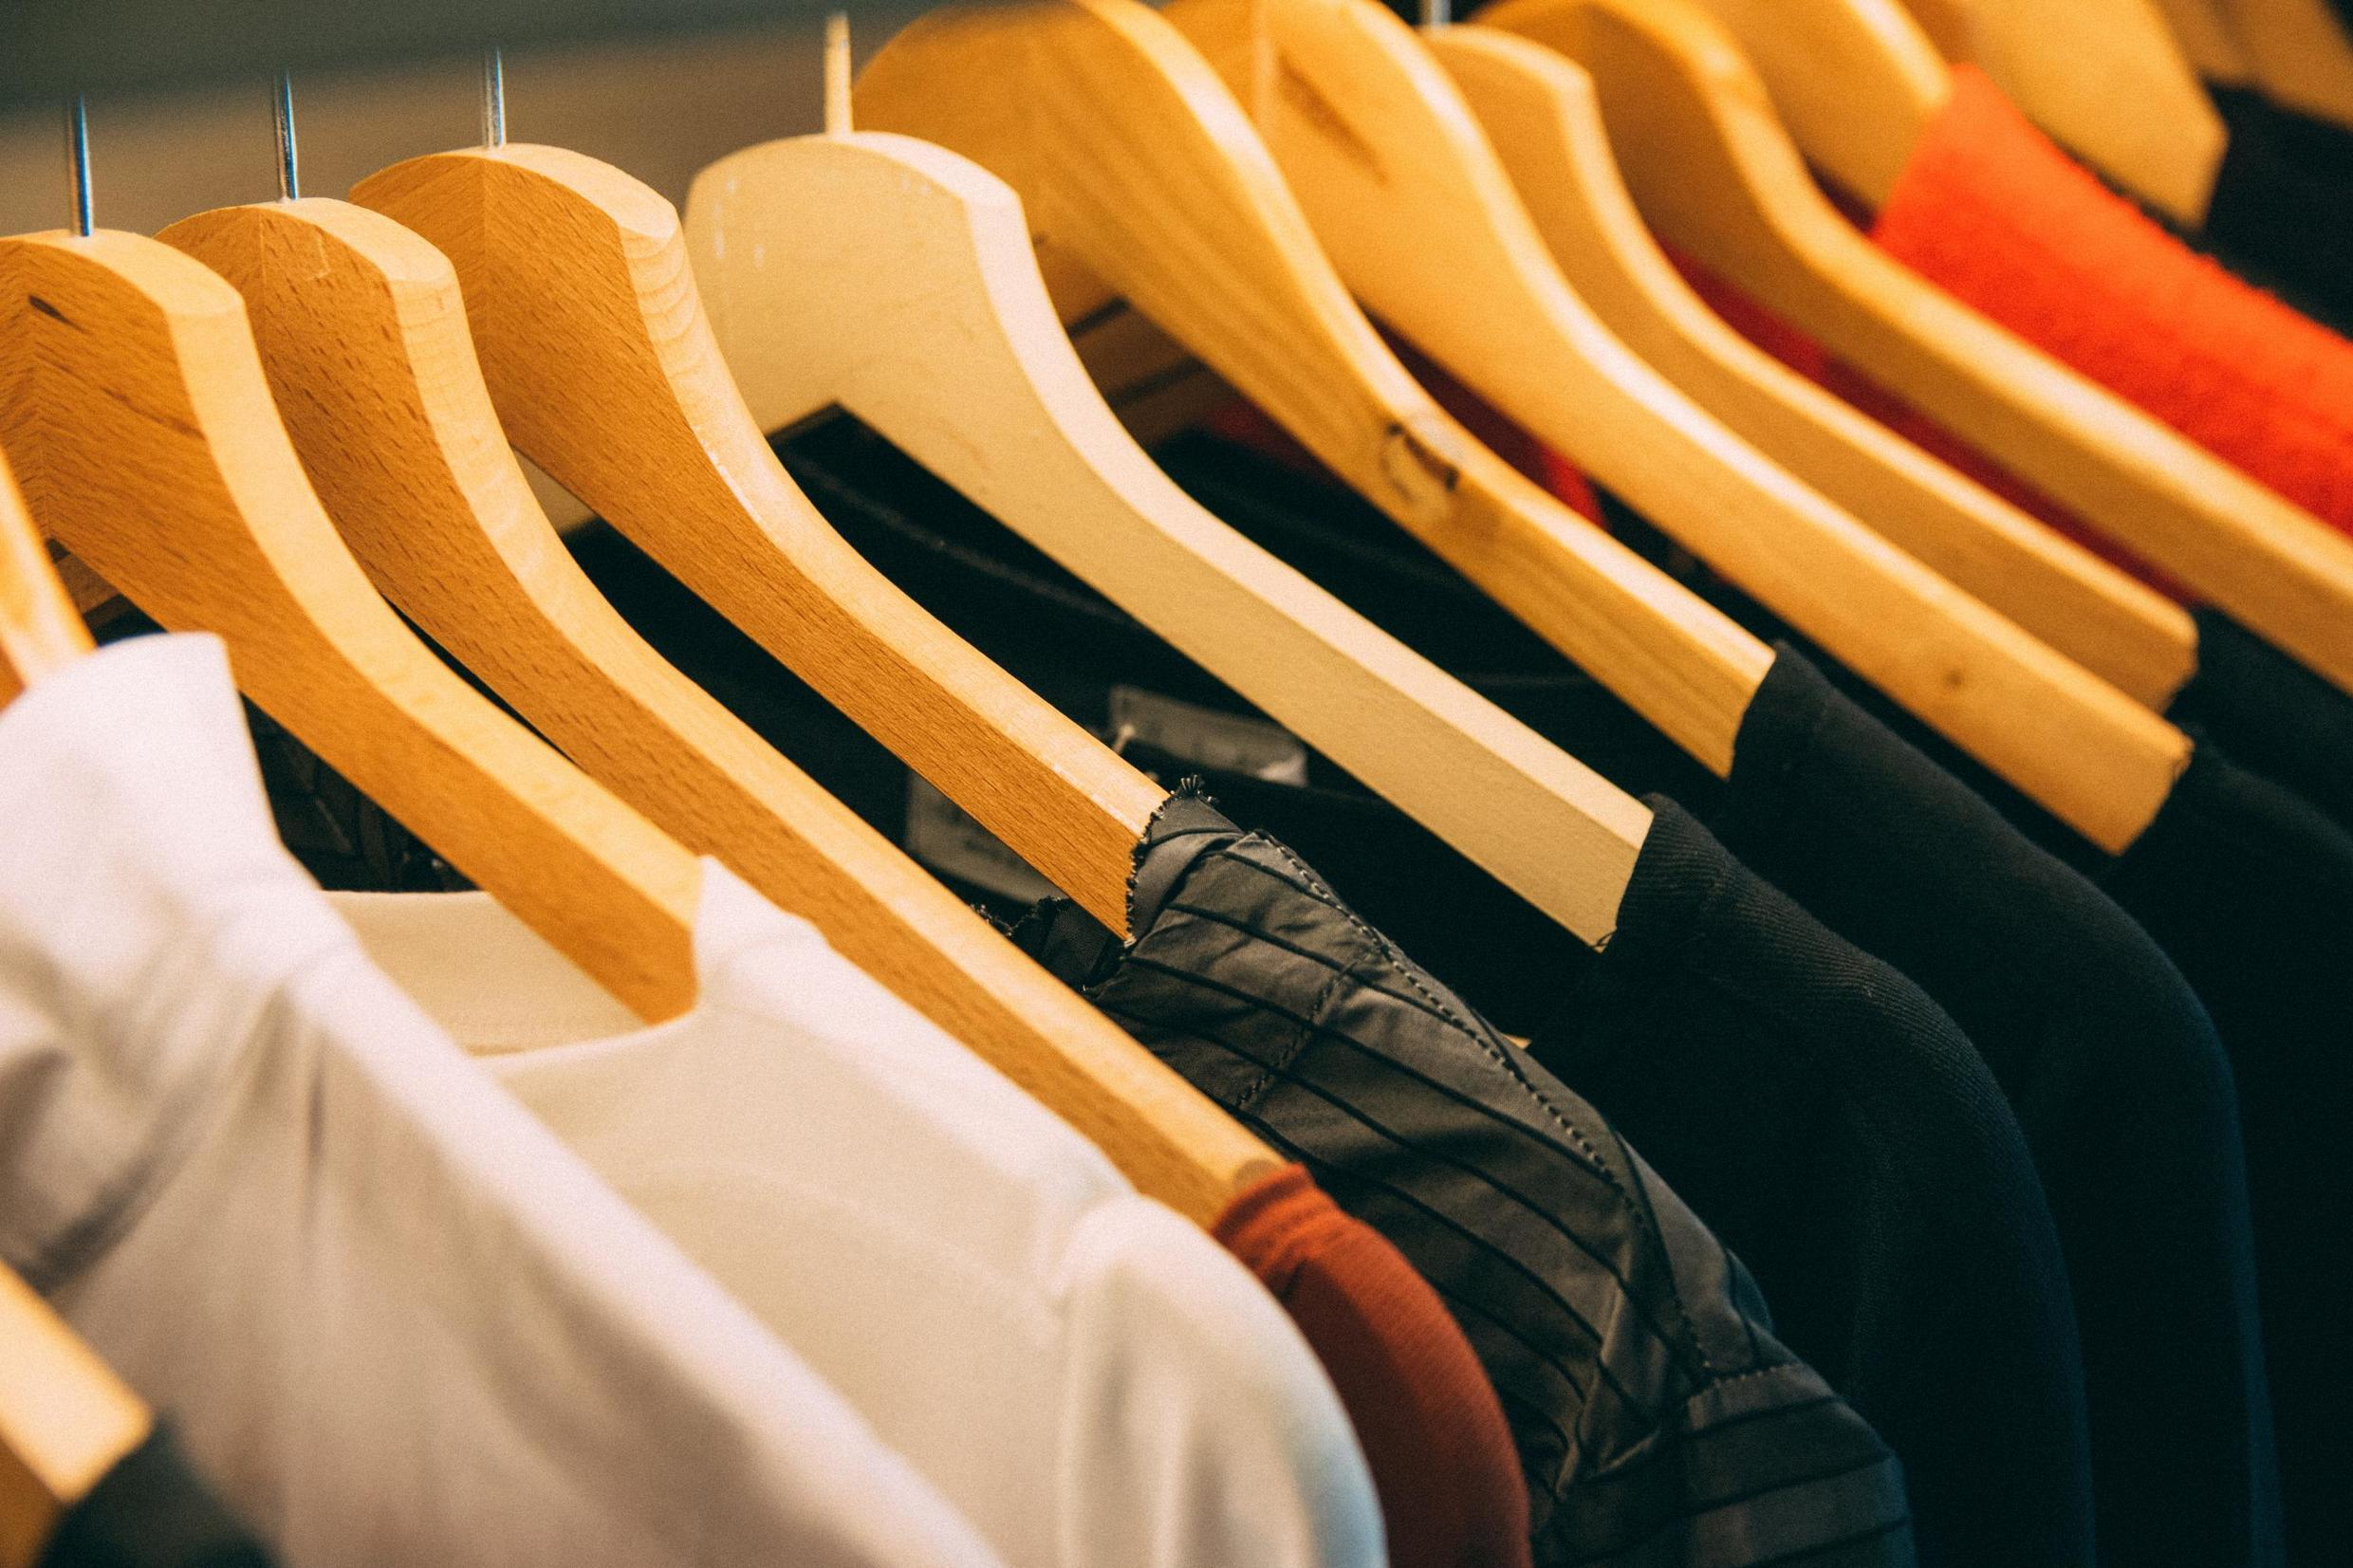 Retailers will be required to donate or recycle unsold clothes and other non-food goods if the law is passed